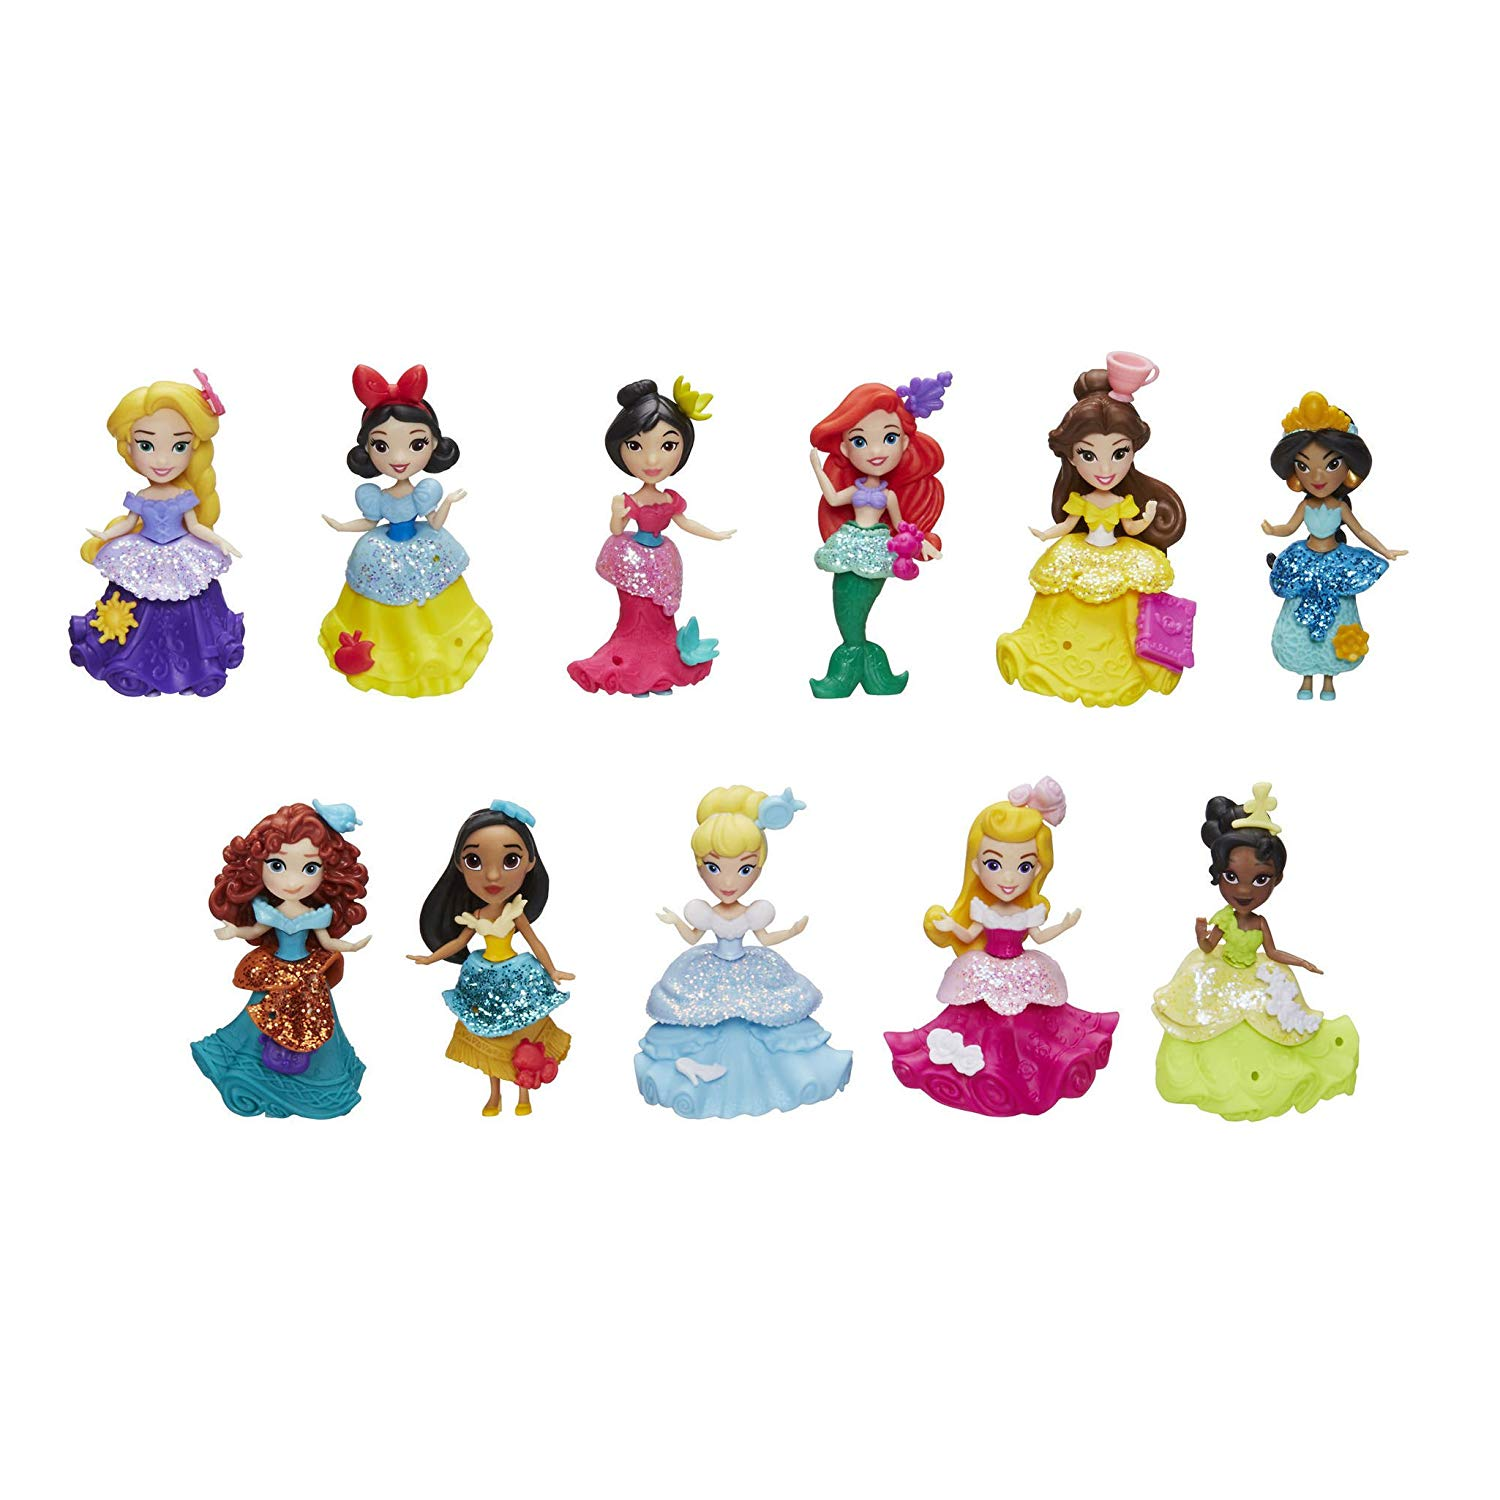 Disney Princess Little Kingdom Collection 11 princesses in all! by Hasbro